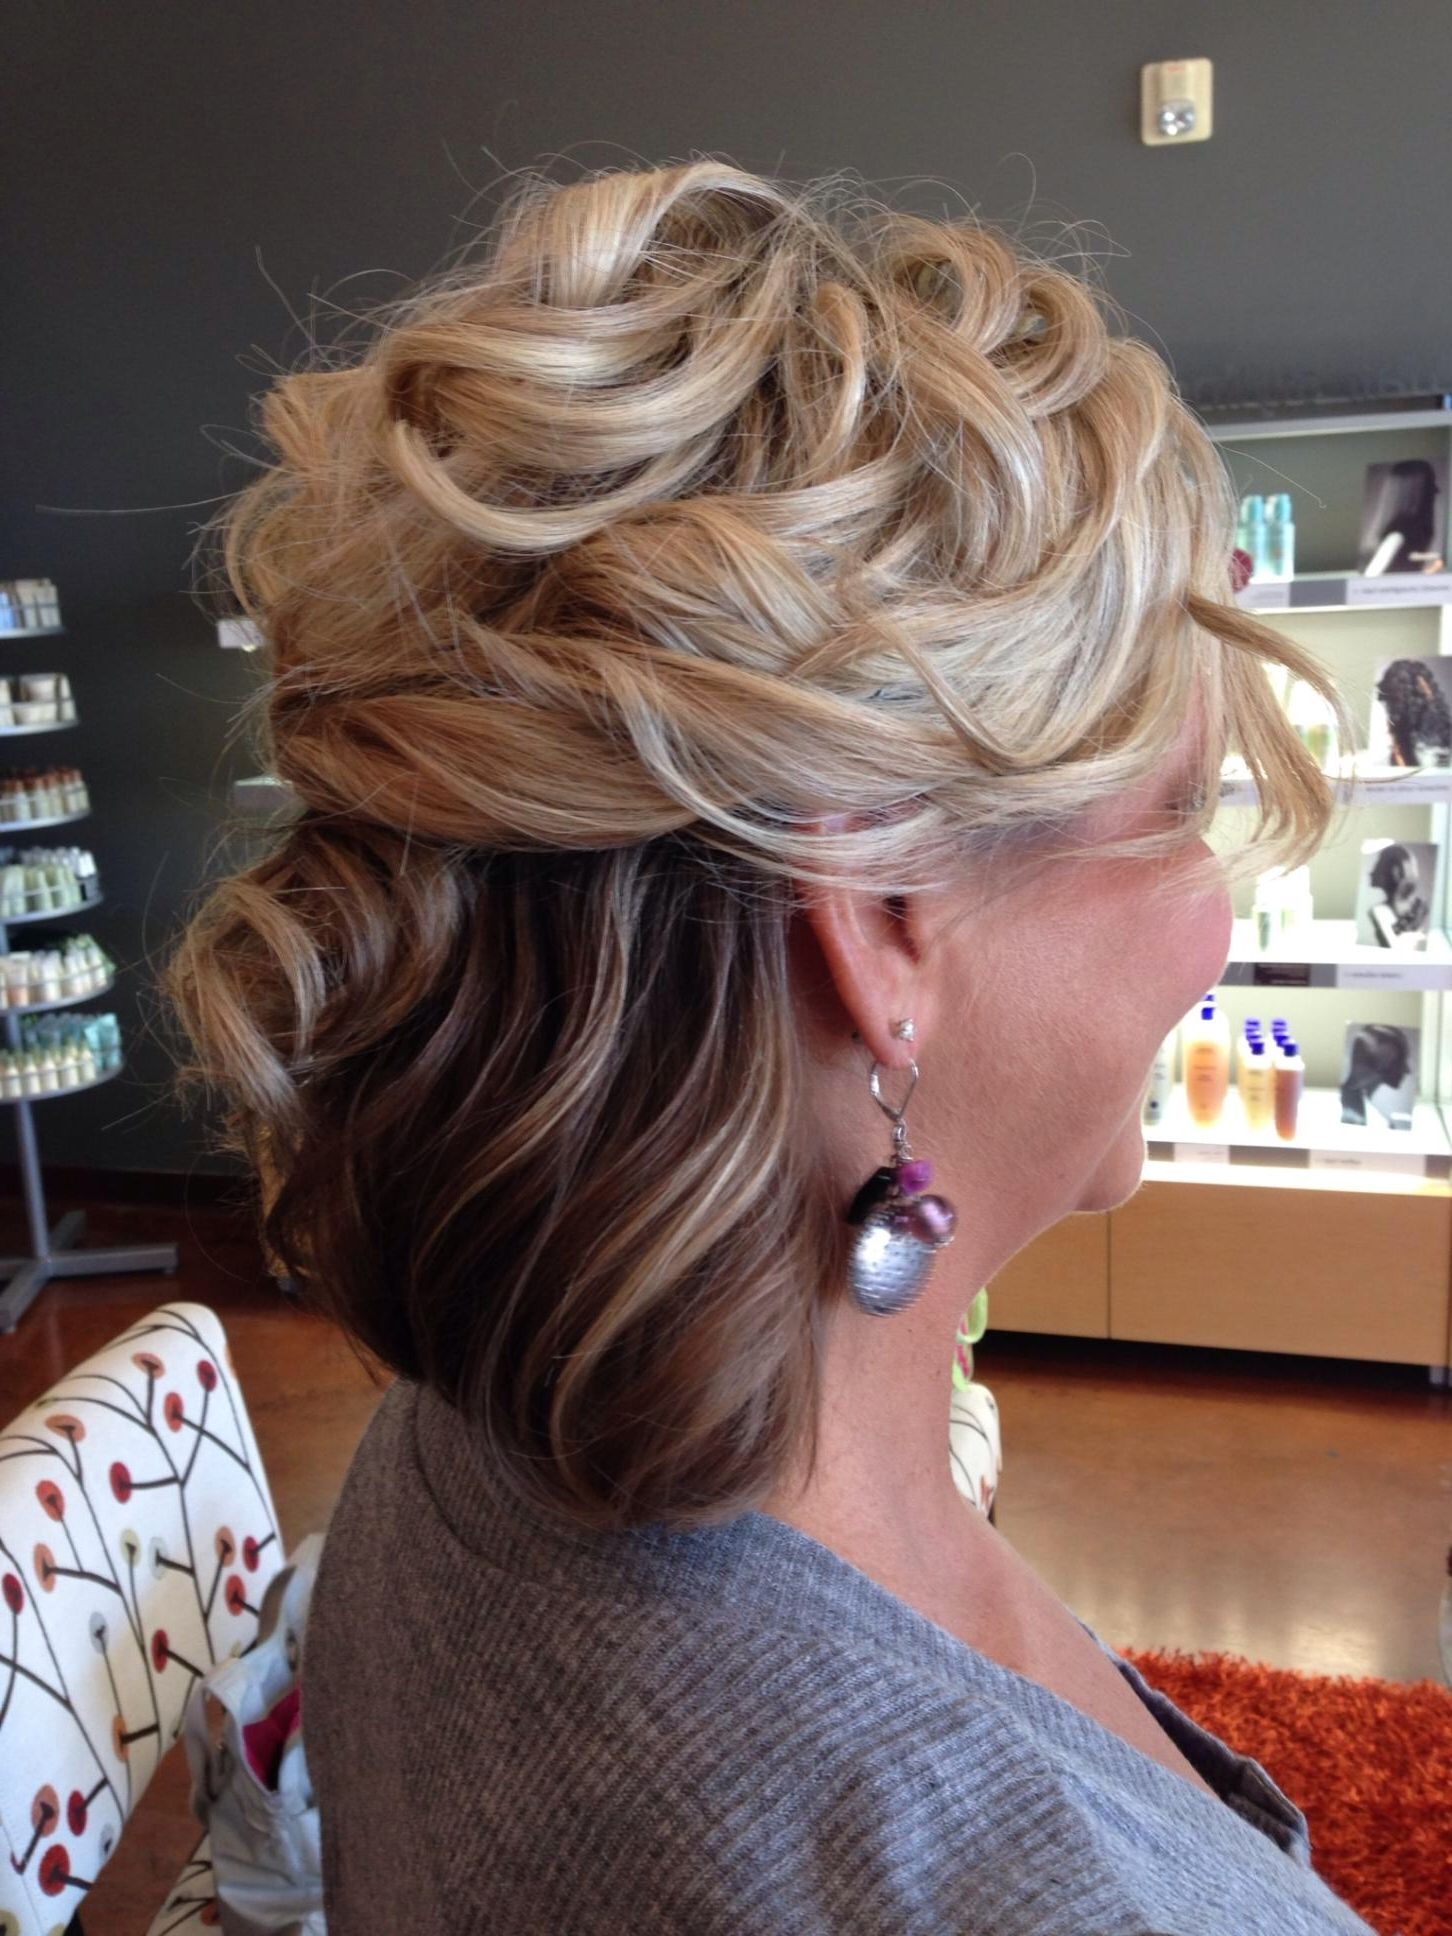 Mother Of The Bride Hairstyles For Medium Length Hair | Justswimfl Intended For Updo Hairstyles For Mother Of The Bride Medium Length Hair (View 13 of 15)